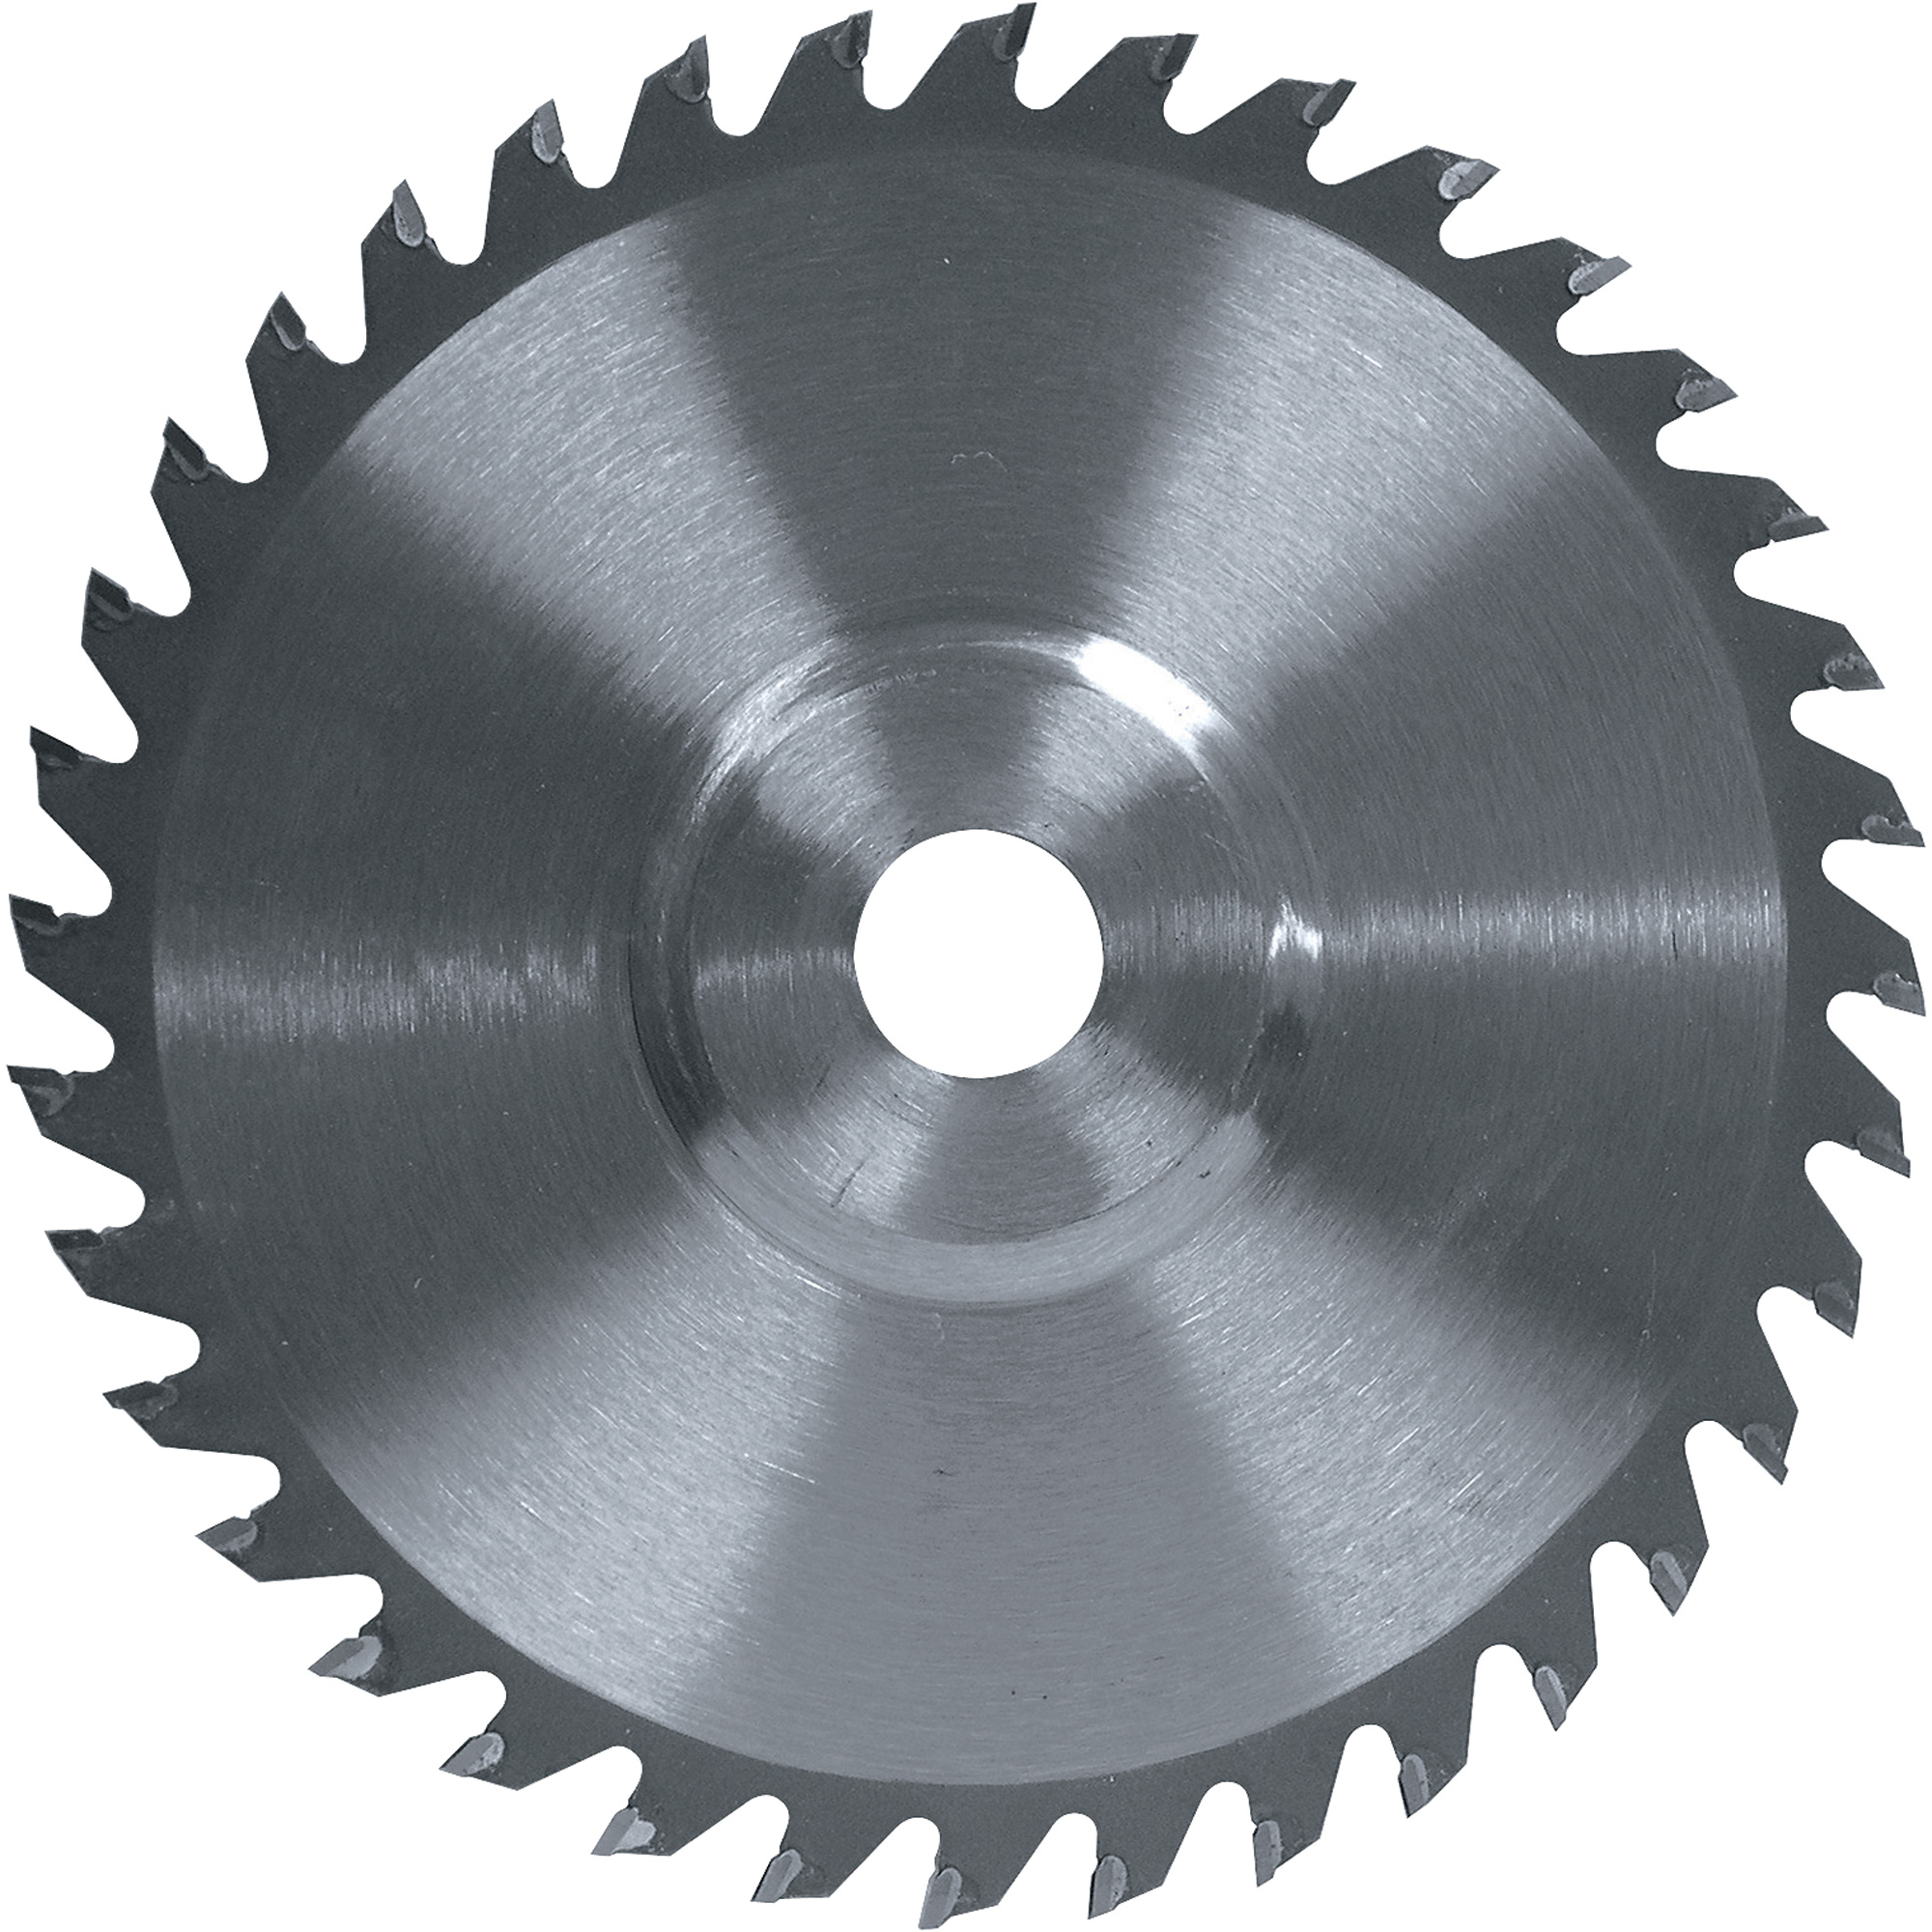 Circular Saw With Eyes Clipart.